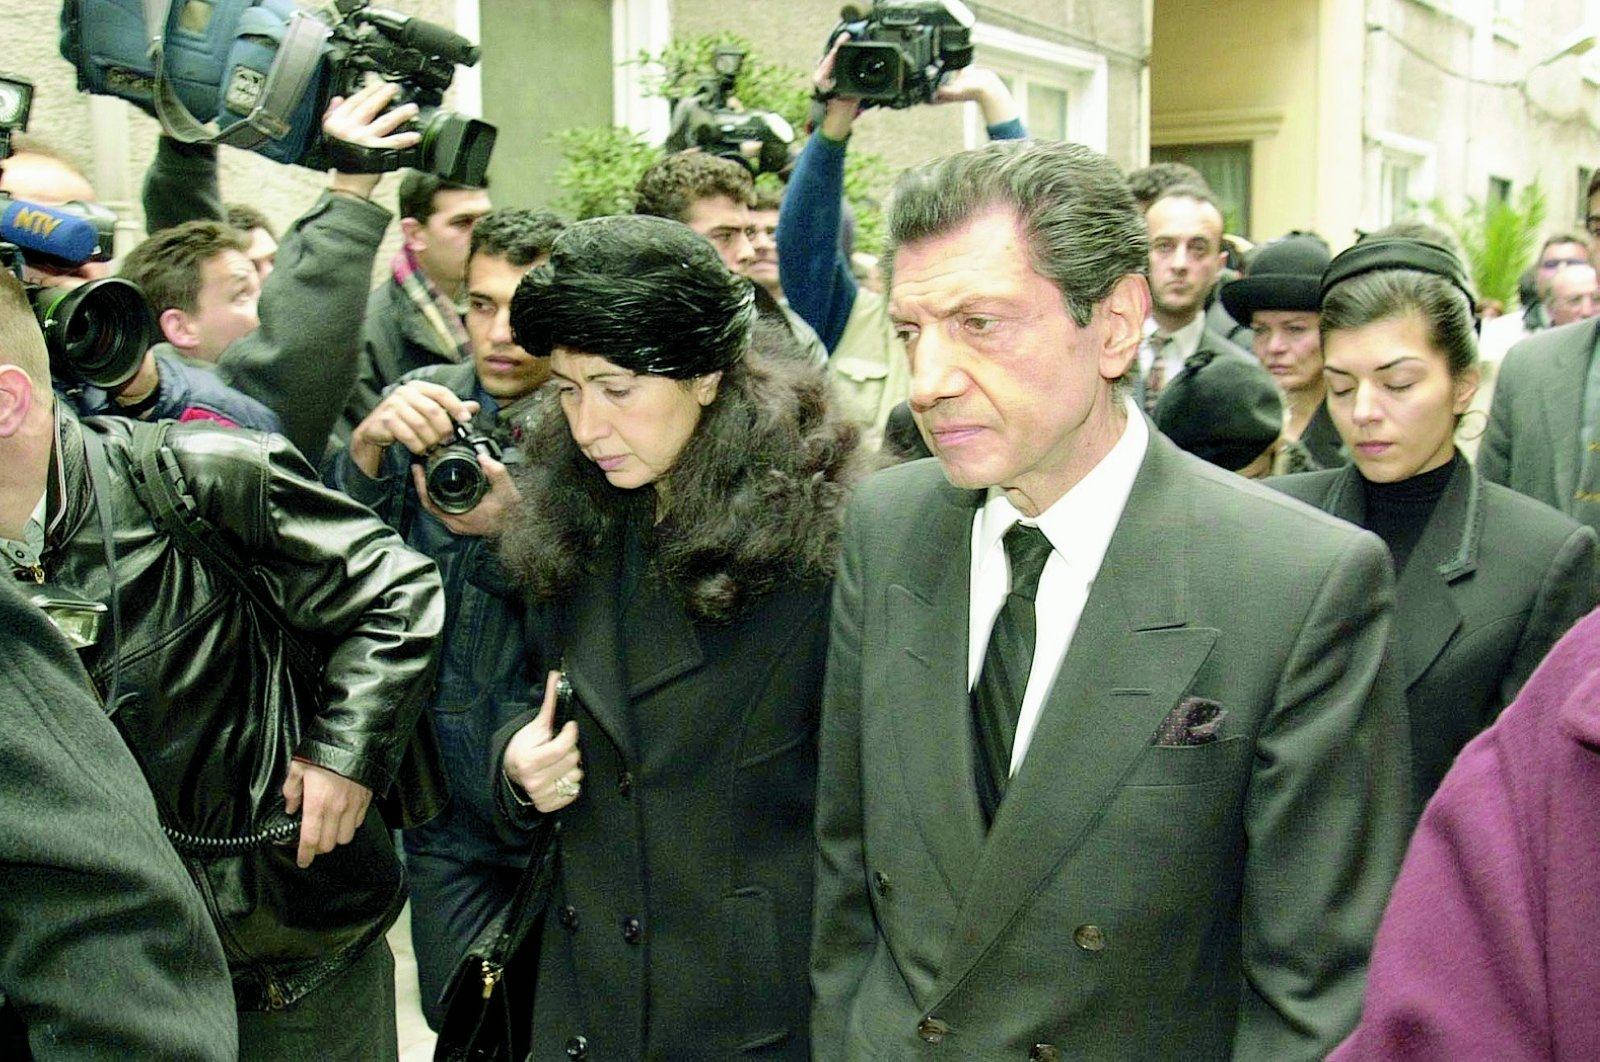 Kerope Çilingir (R) attends Matild Manukyan's funeral in Istanbul, Turkey, Feb. 22, 2001. (Photo by Recai Kömür)